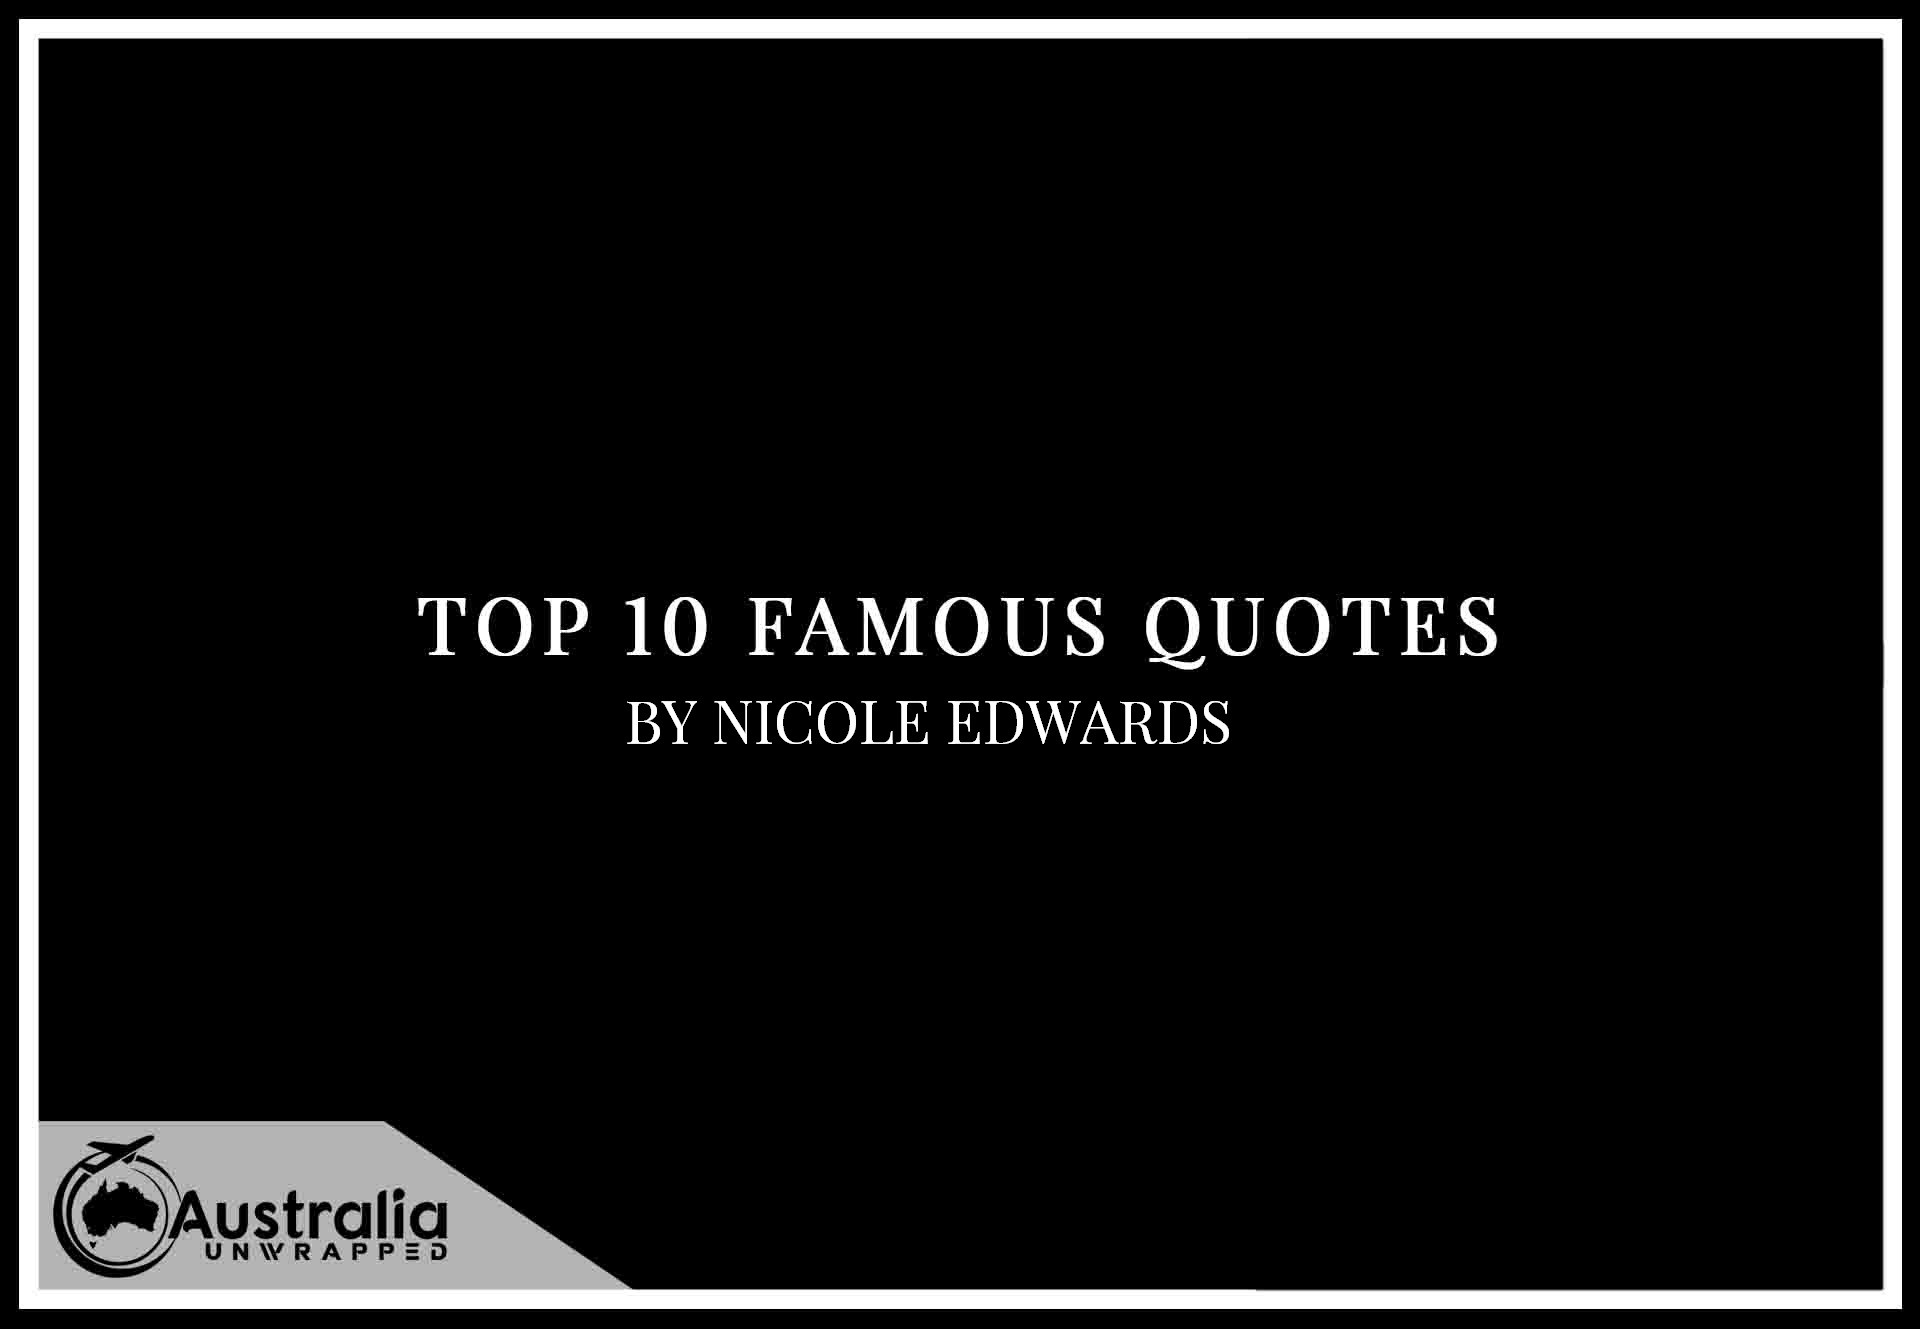 Top 10 Famous Quotes by Author Nicole Edwards